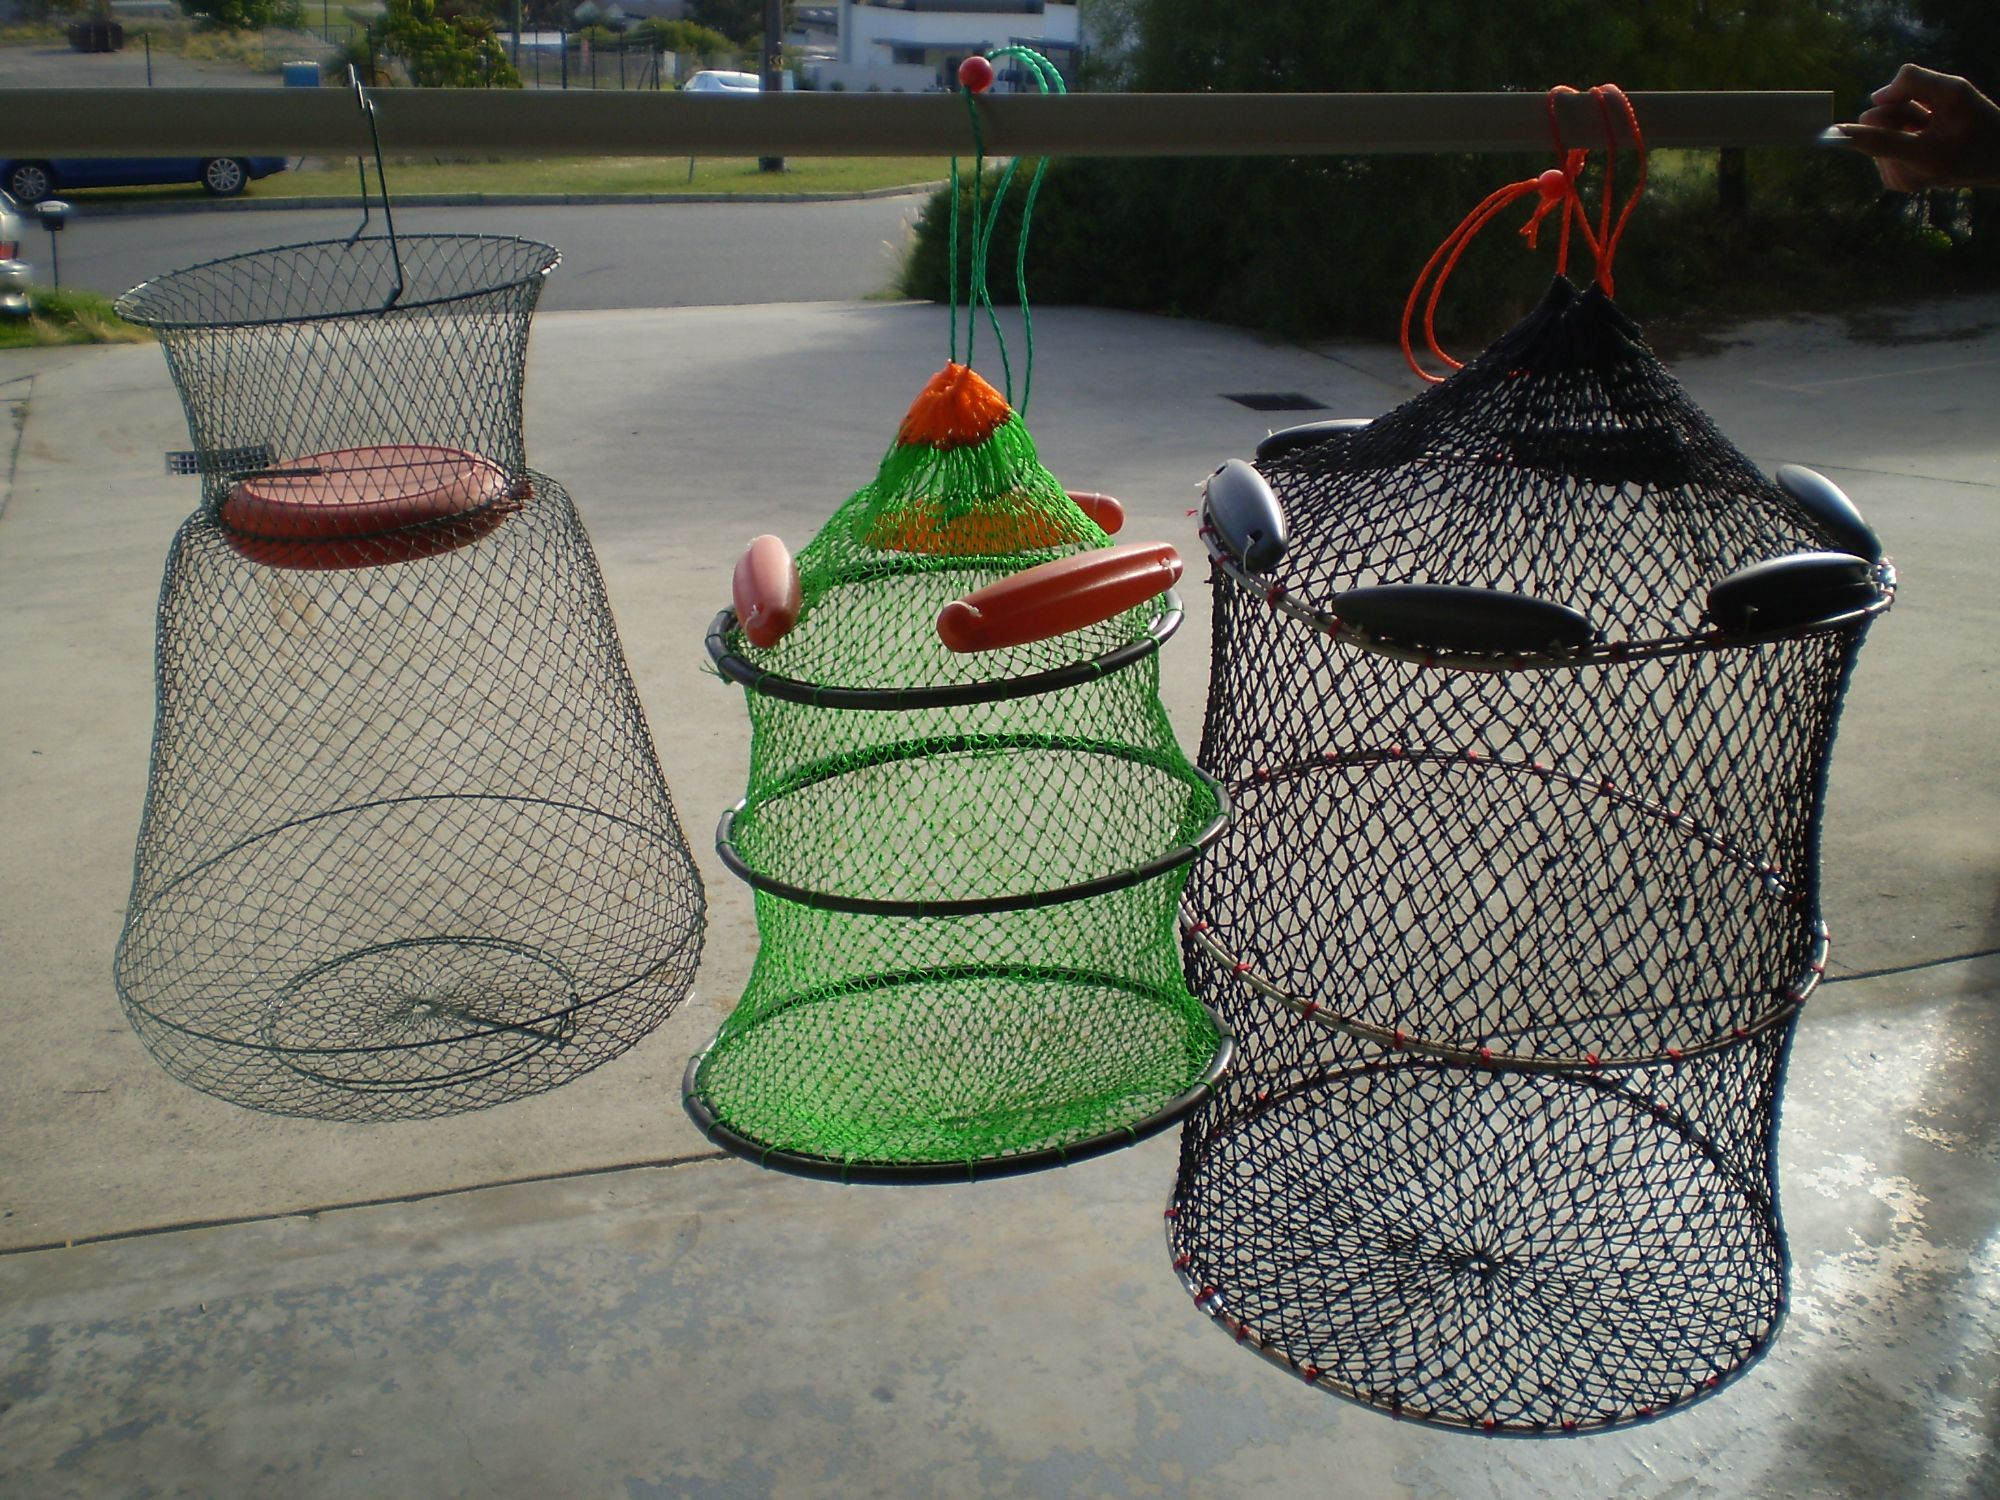 Live Bait Holders For Sale in Perth, Western Australia